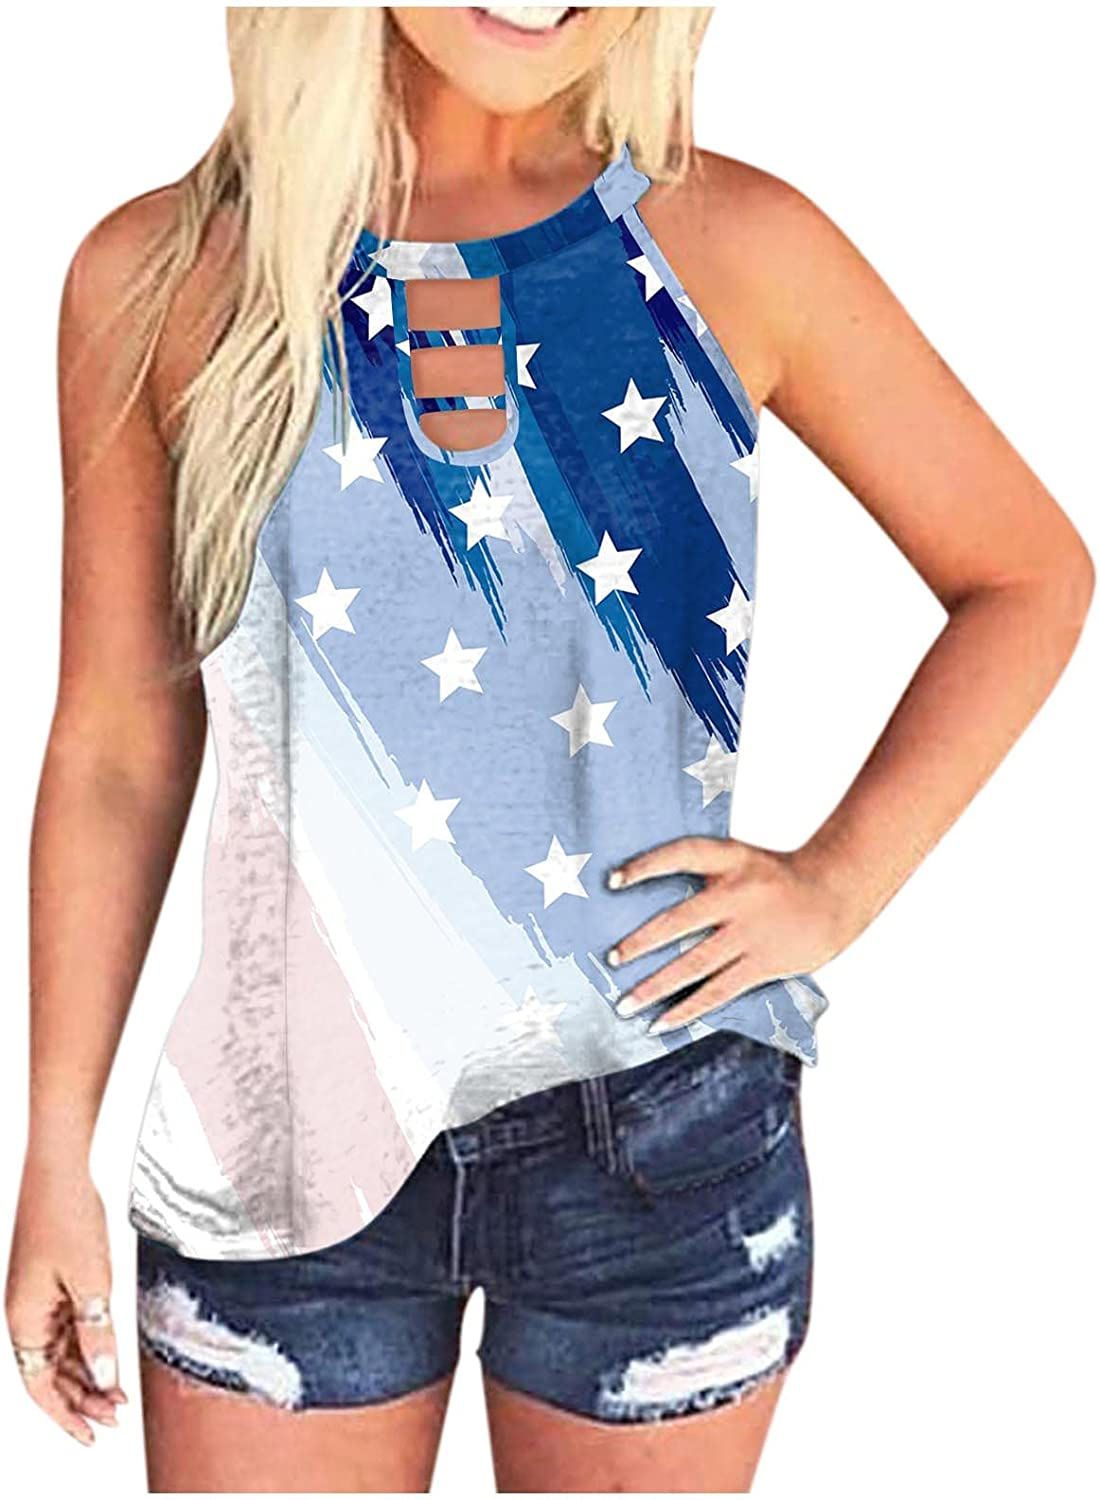 Gerichy Tank Tops for Women, Womens Summer Sleeveless Blouses Tops Casual Plus Size Loose Fit Tunic Tops Shirts Tees